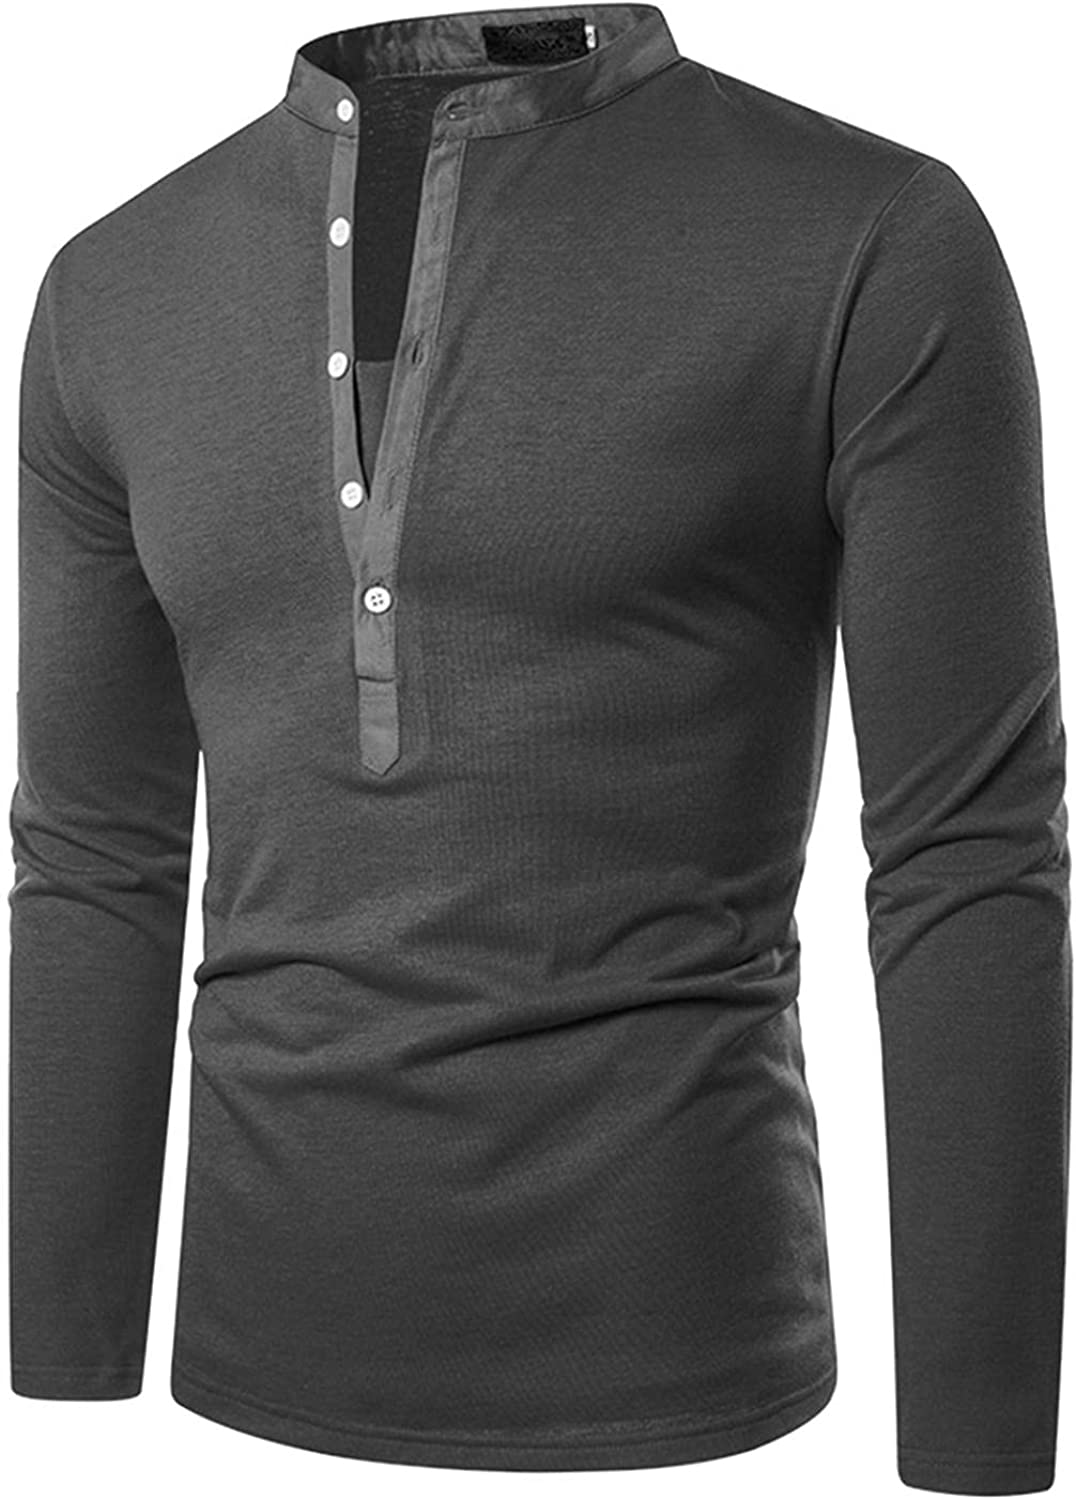 FUNEY Men's Henley Cotton Casual Long Sleeve Lightweight Button V Neck T-Shirts Slim Fit Basic Big and Tall Fashion Tops